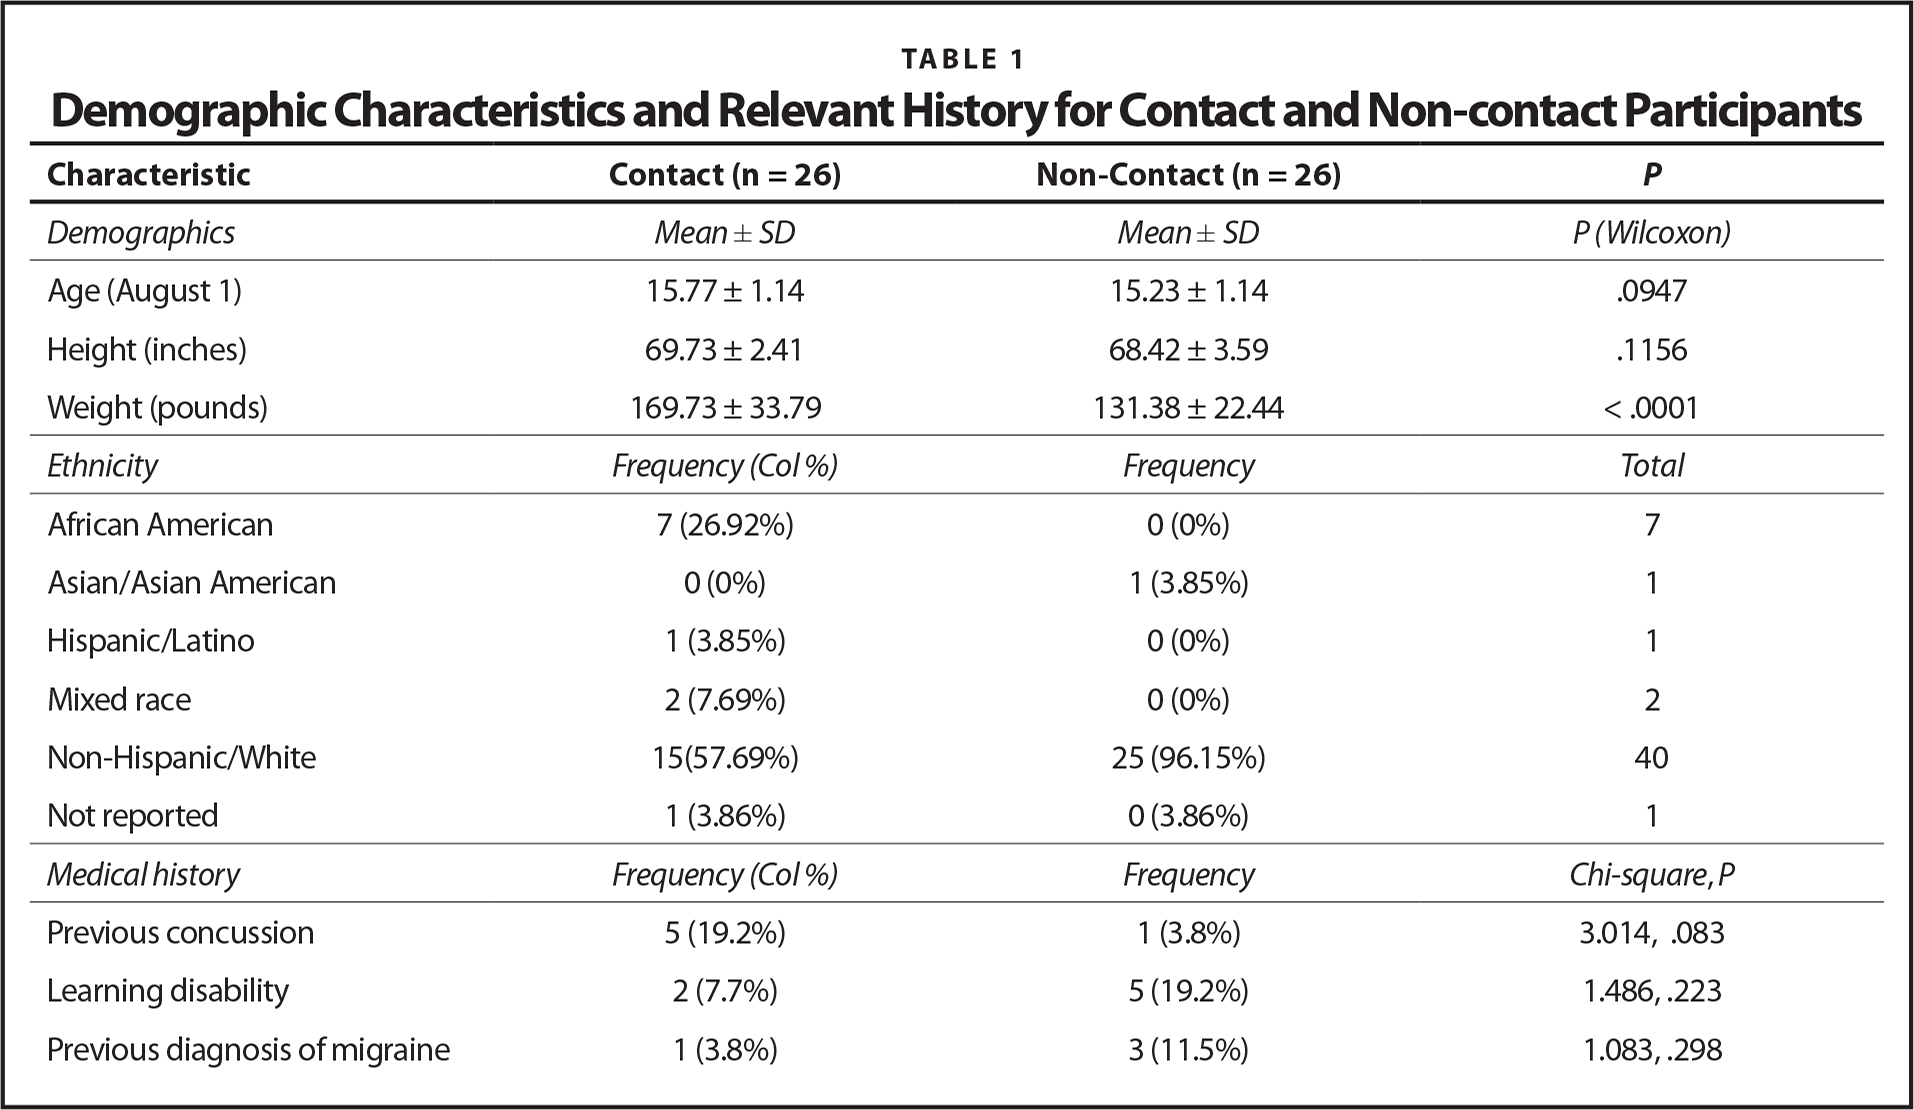 Demographic Characteristics and Relevant History for Contact and Non-contact Participants